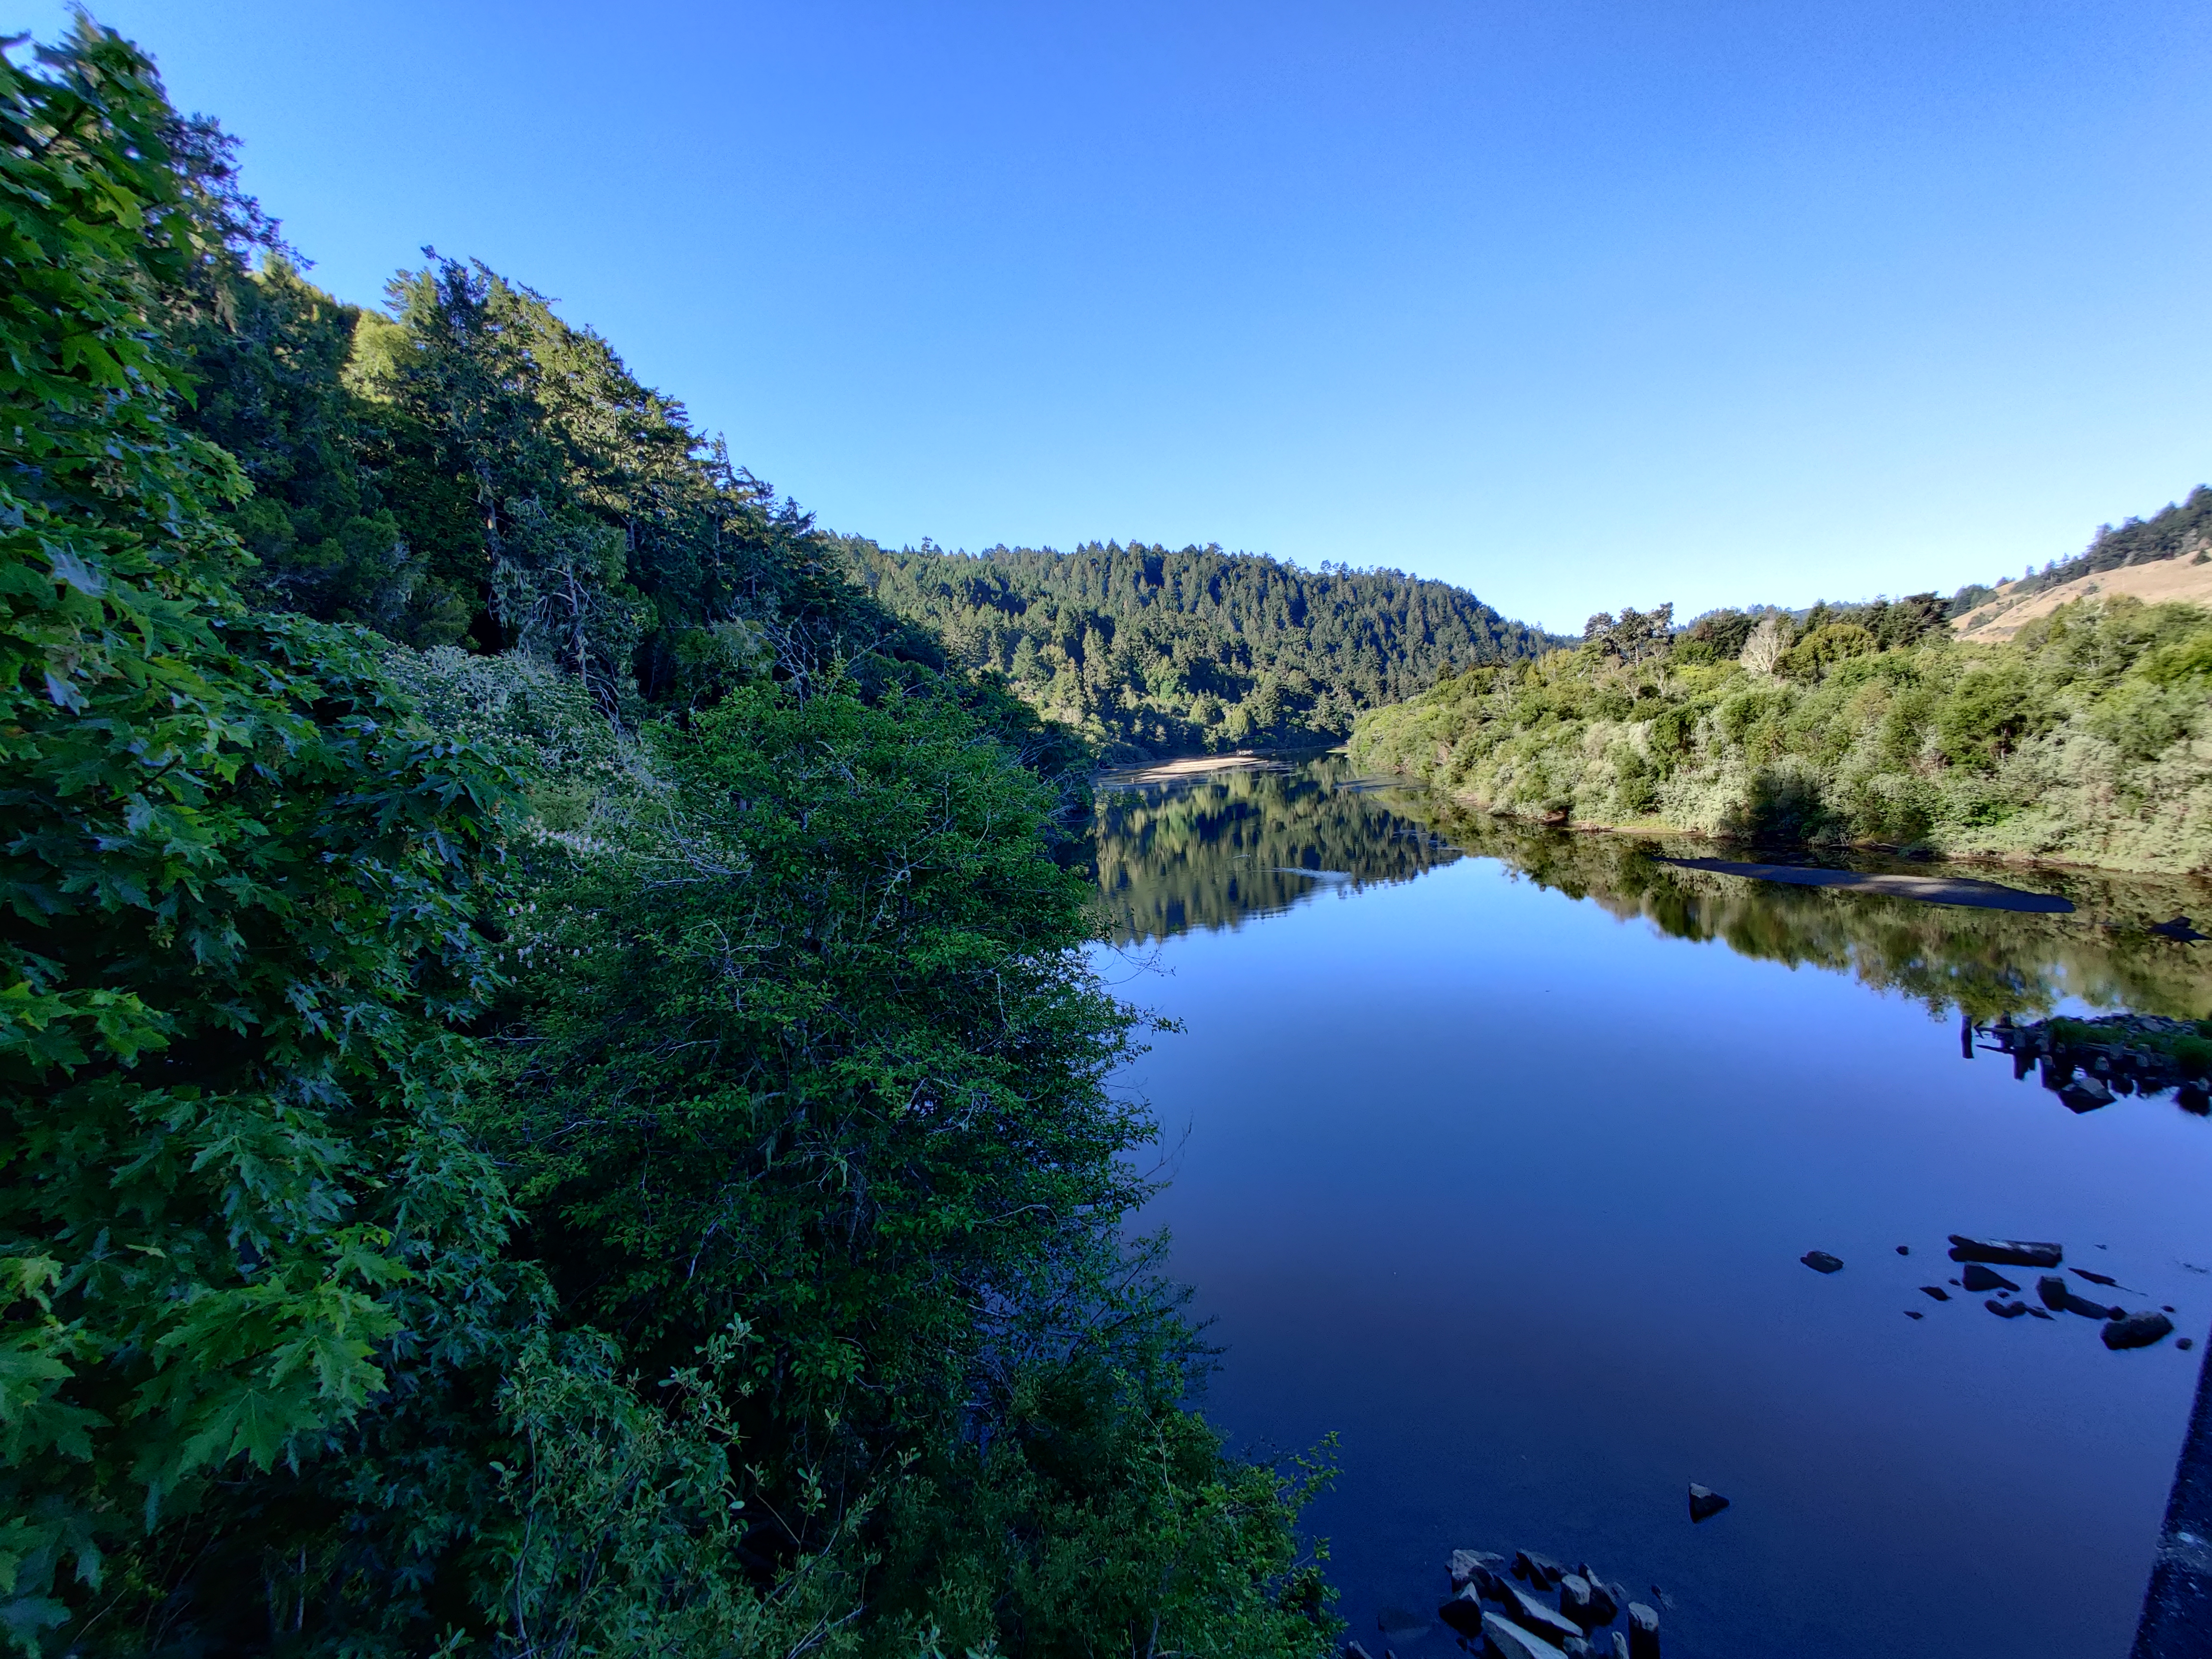 Low water flow during the spring in the Russian River.